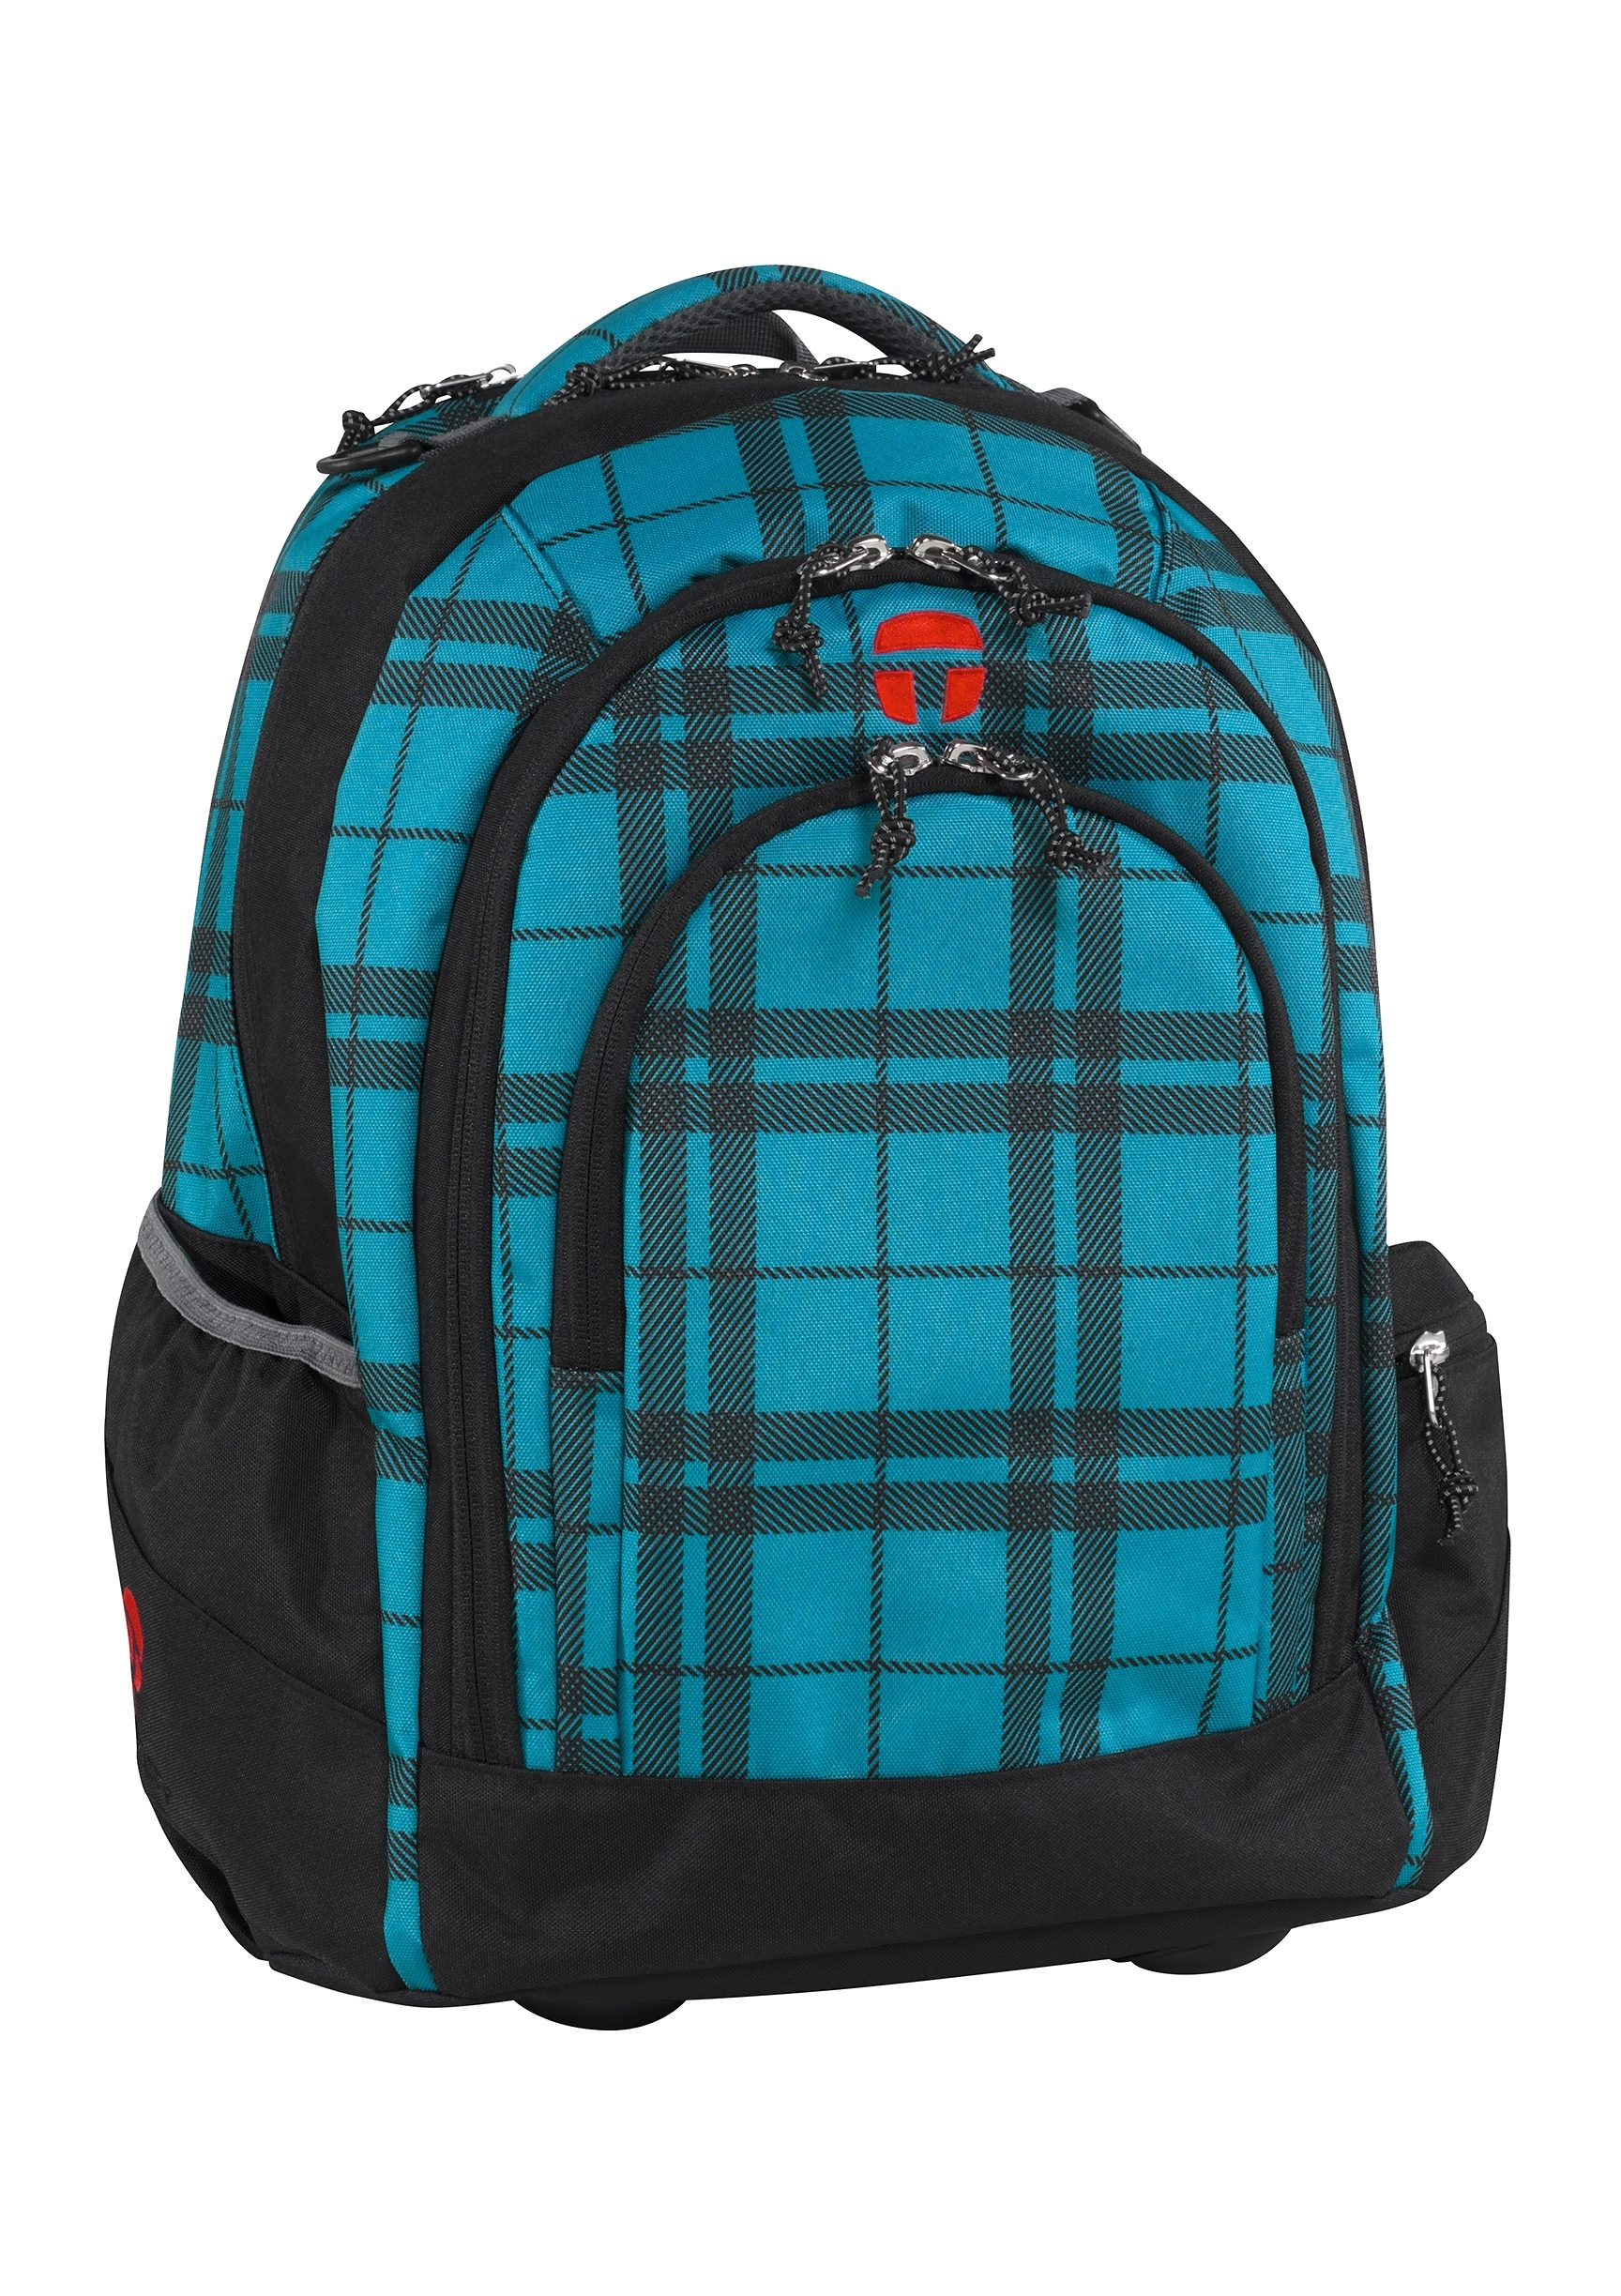 TAKE IT EASY® Rucksack, »Berlin Scotch Turquoise«